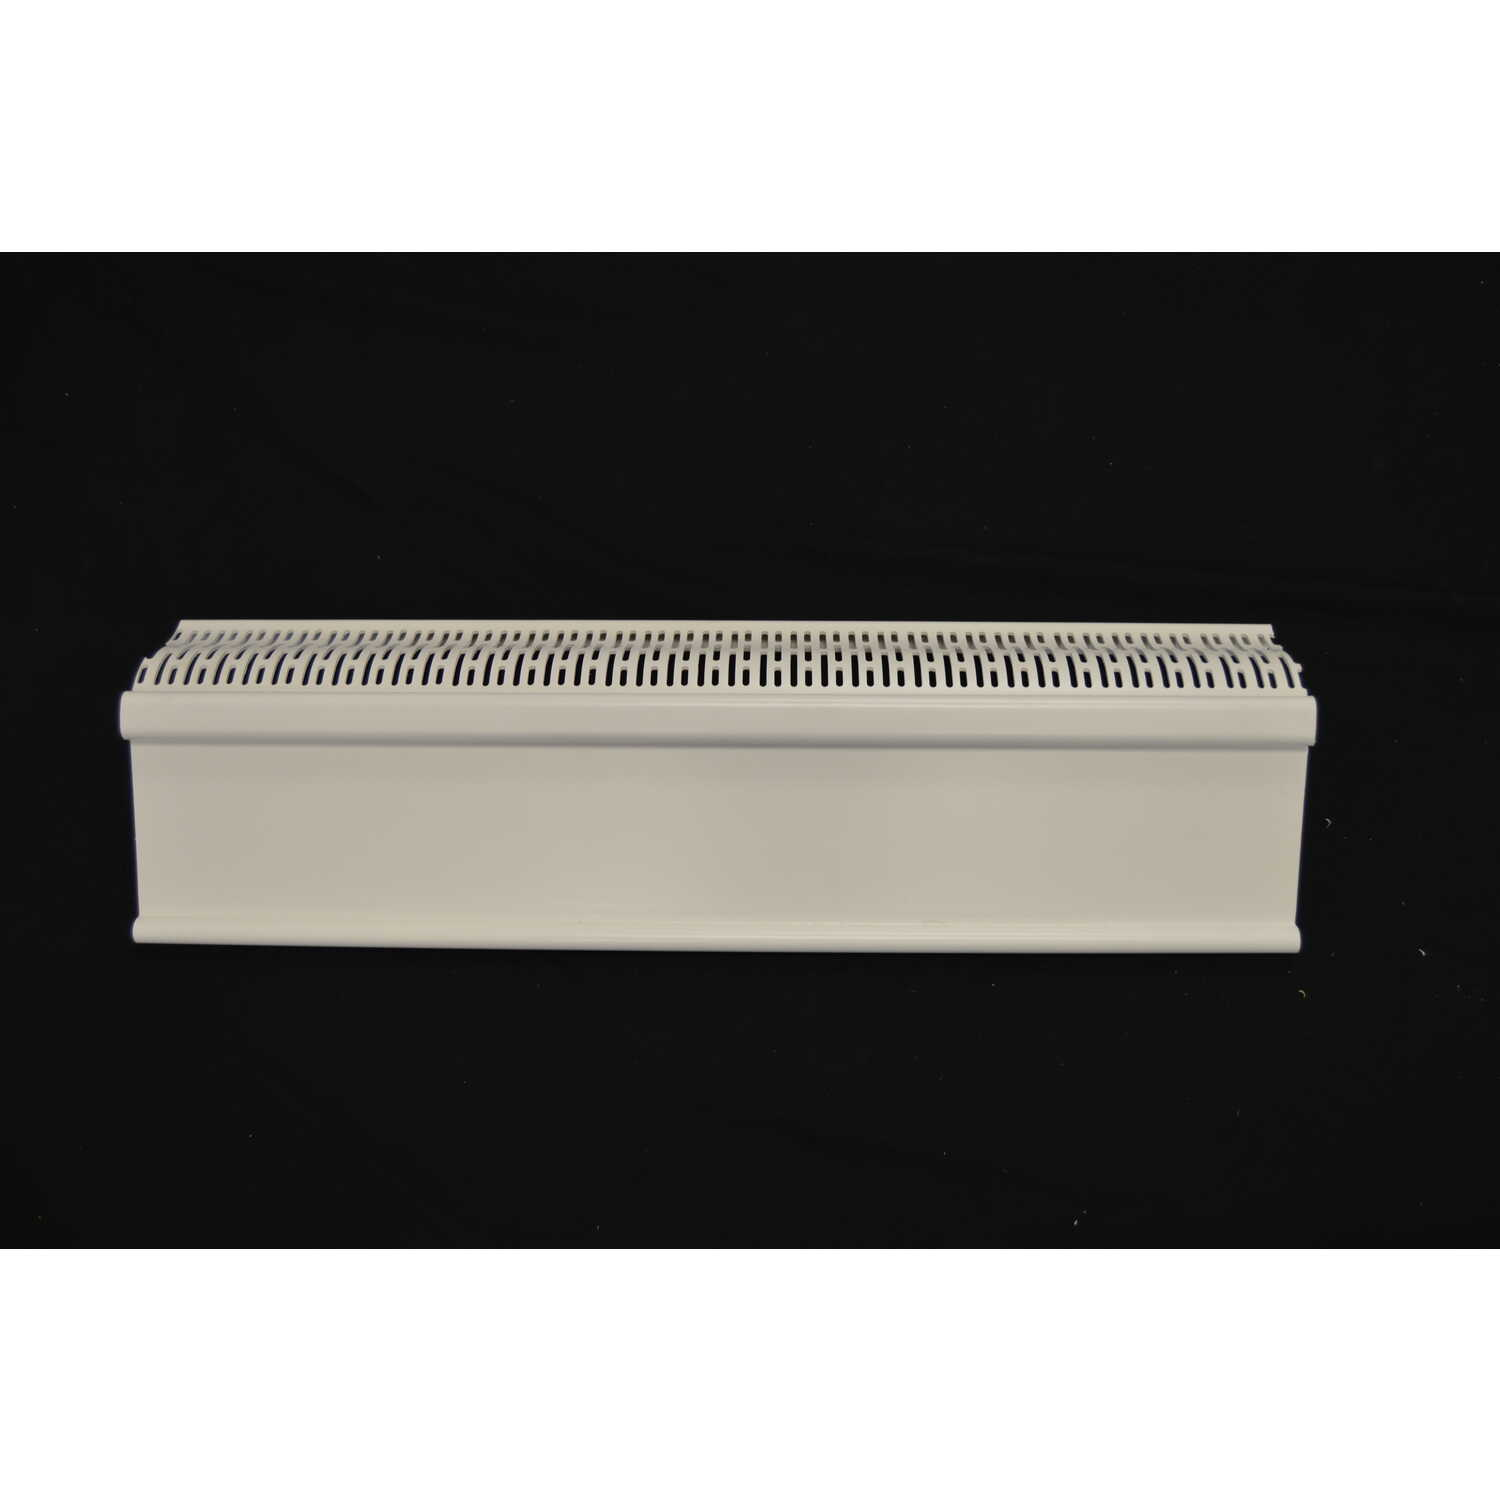 Plastx  The Better Baseboard Cover  3 in. H x 8 in. D 1-Way  White  ABS Plastic  Baseboard Heater Co